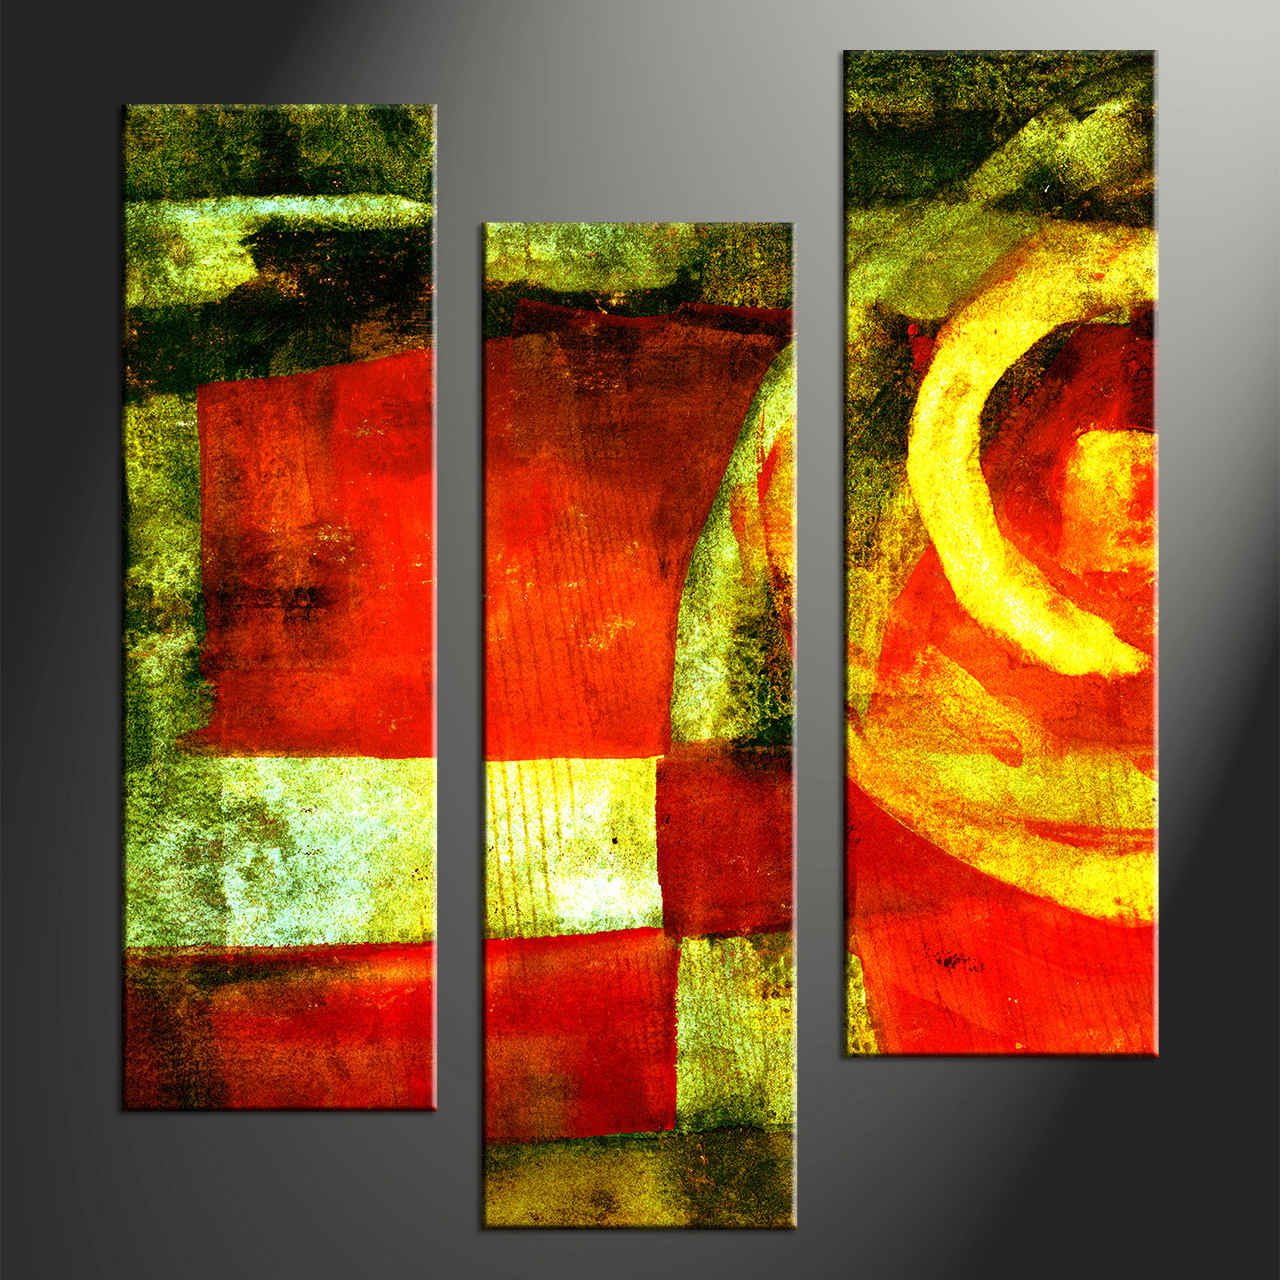 Home decor paintings - Home Decor 3 Piece Canvas Wall Art Abstract Group Canvas Abstract Canvas Photography